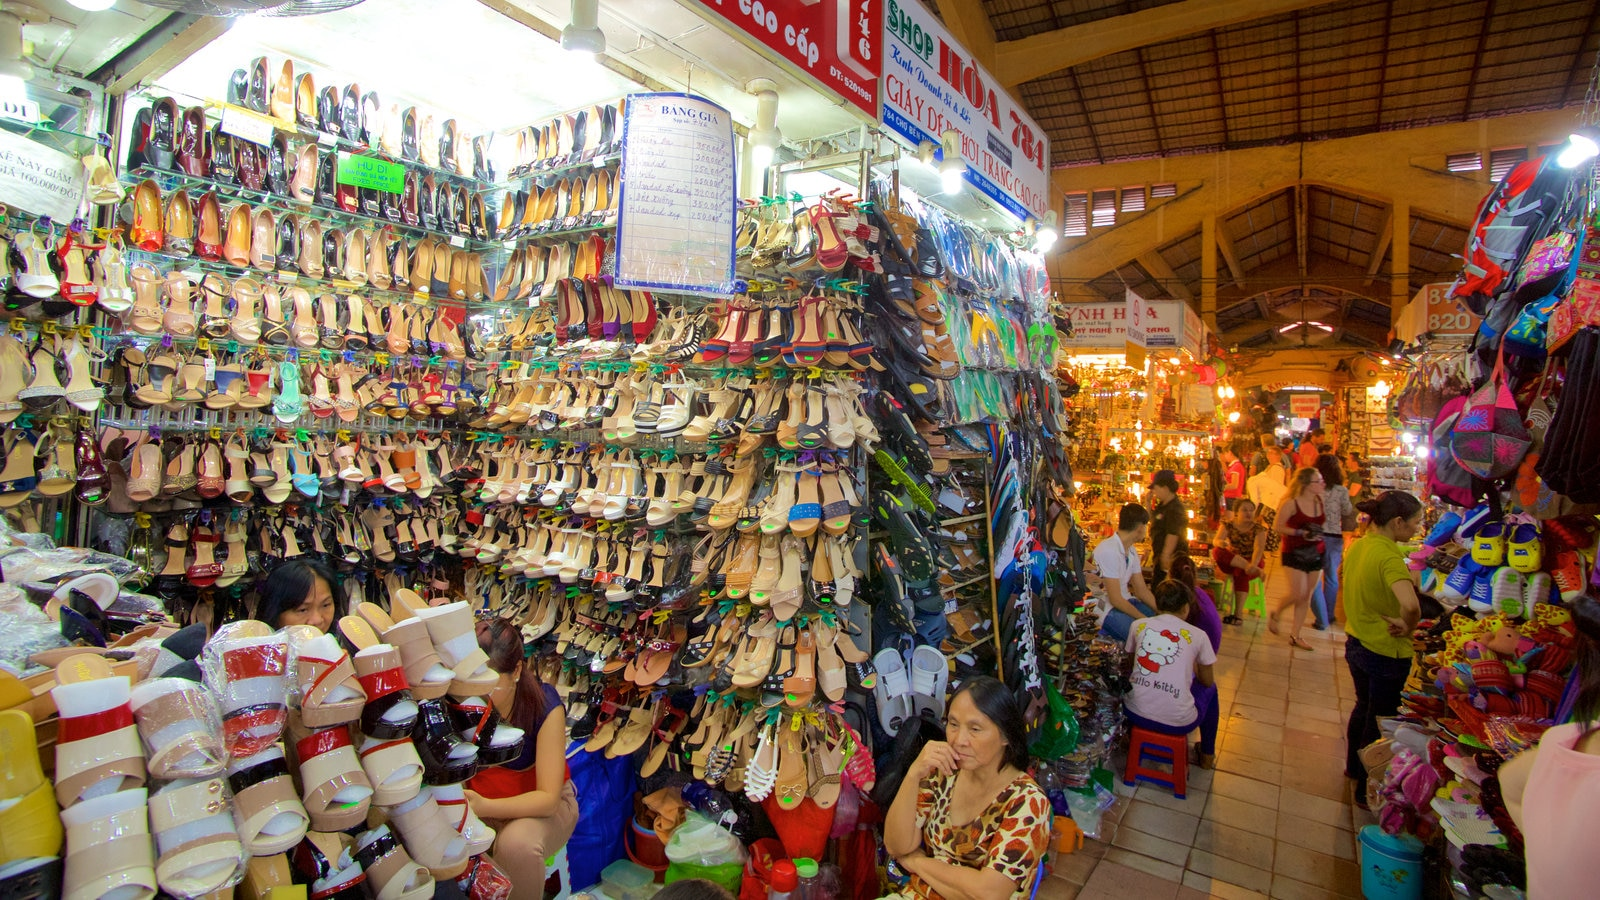 Ben Thanh Market which includes markets, shopping and interior views